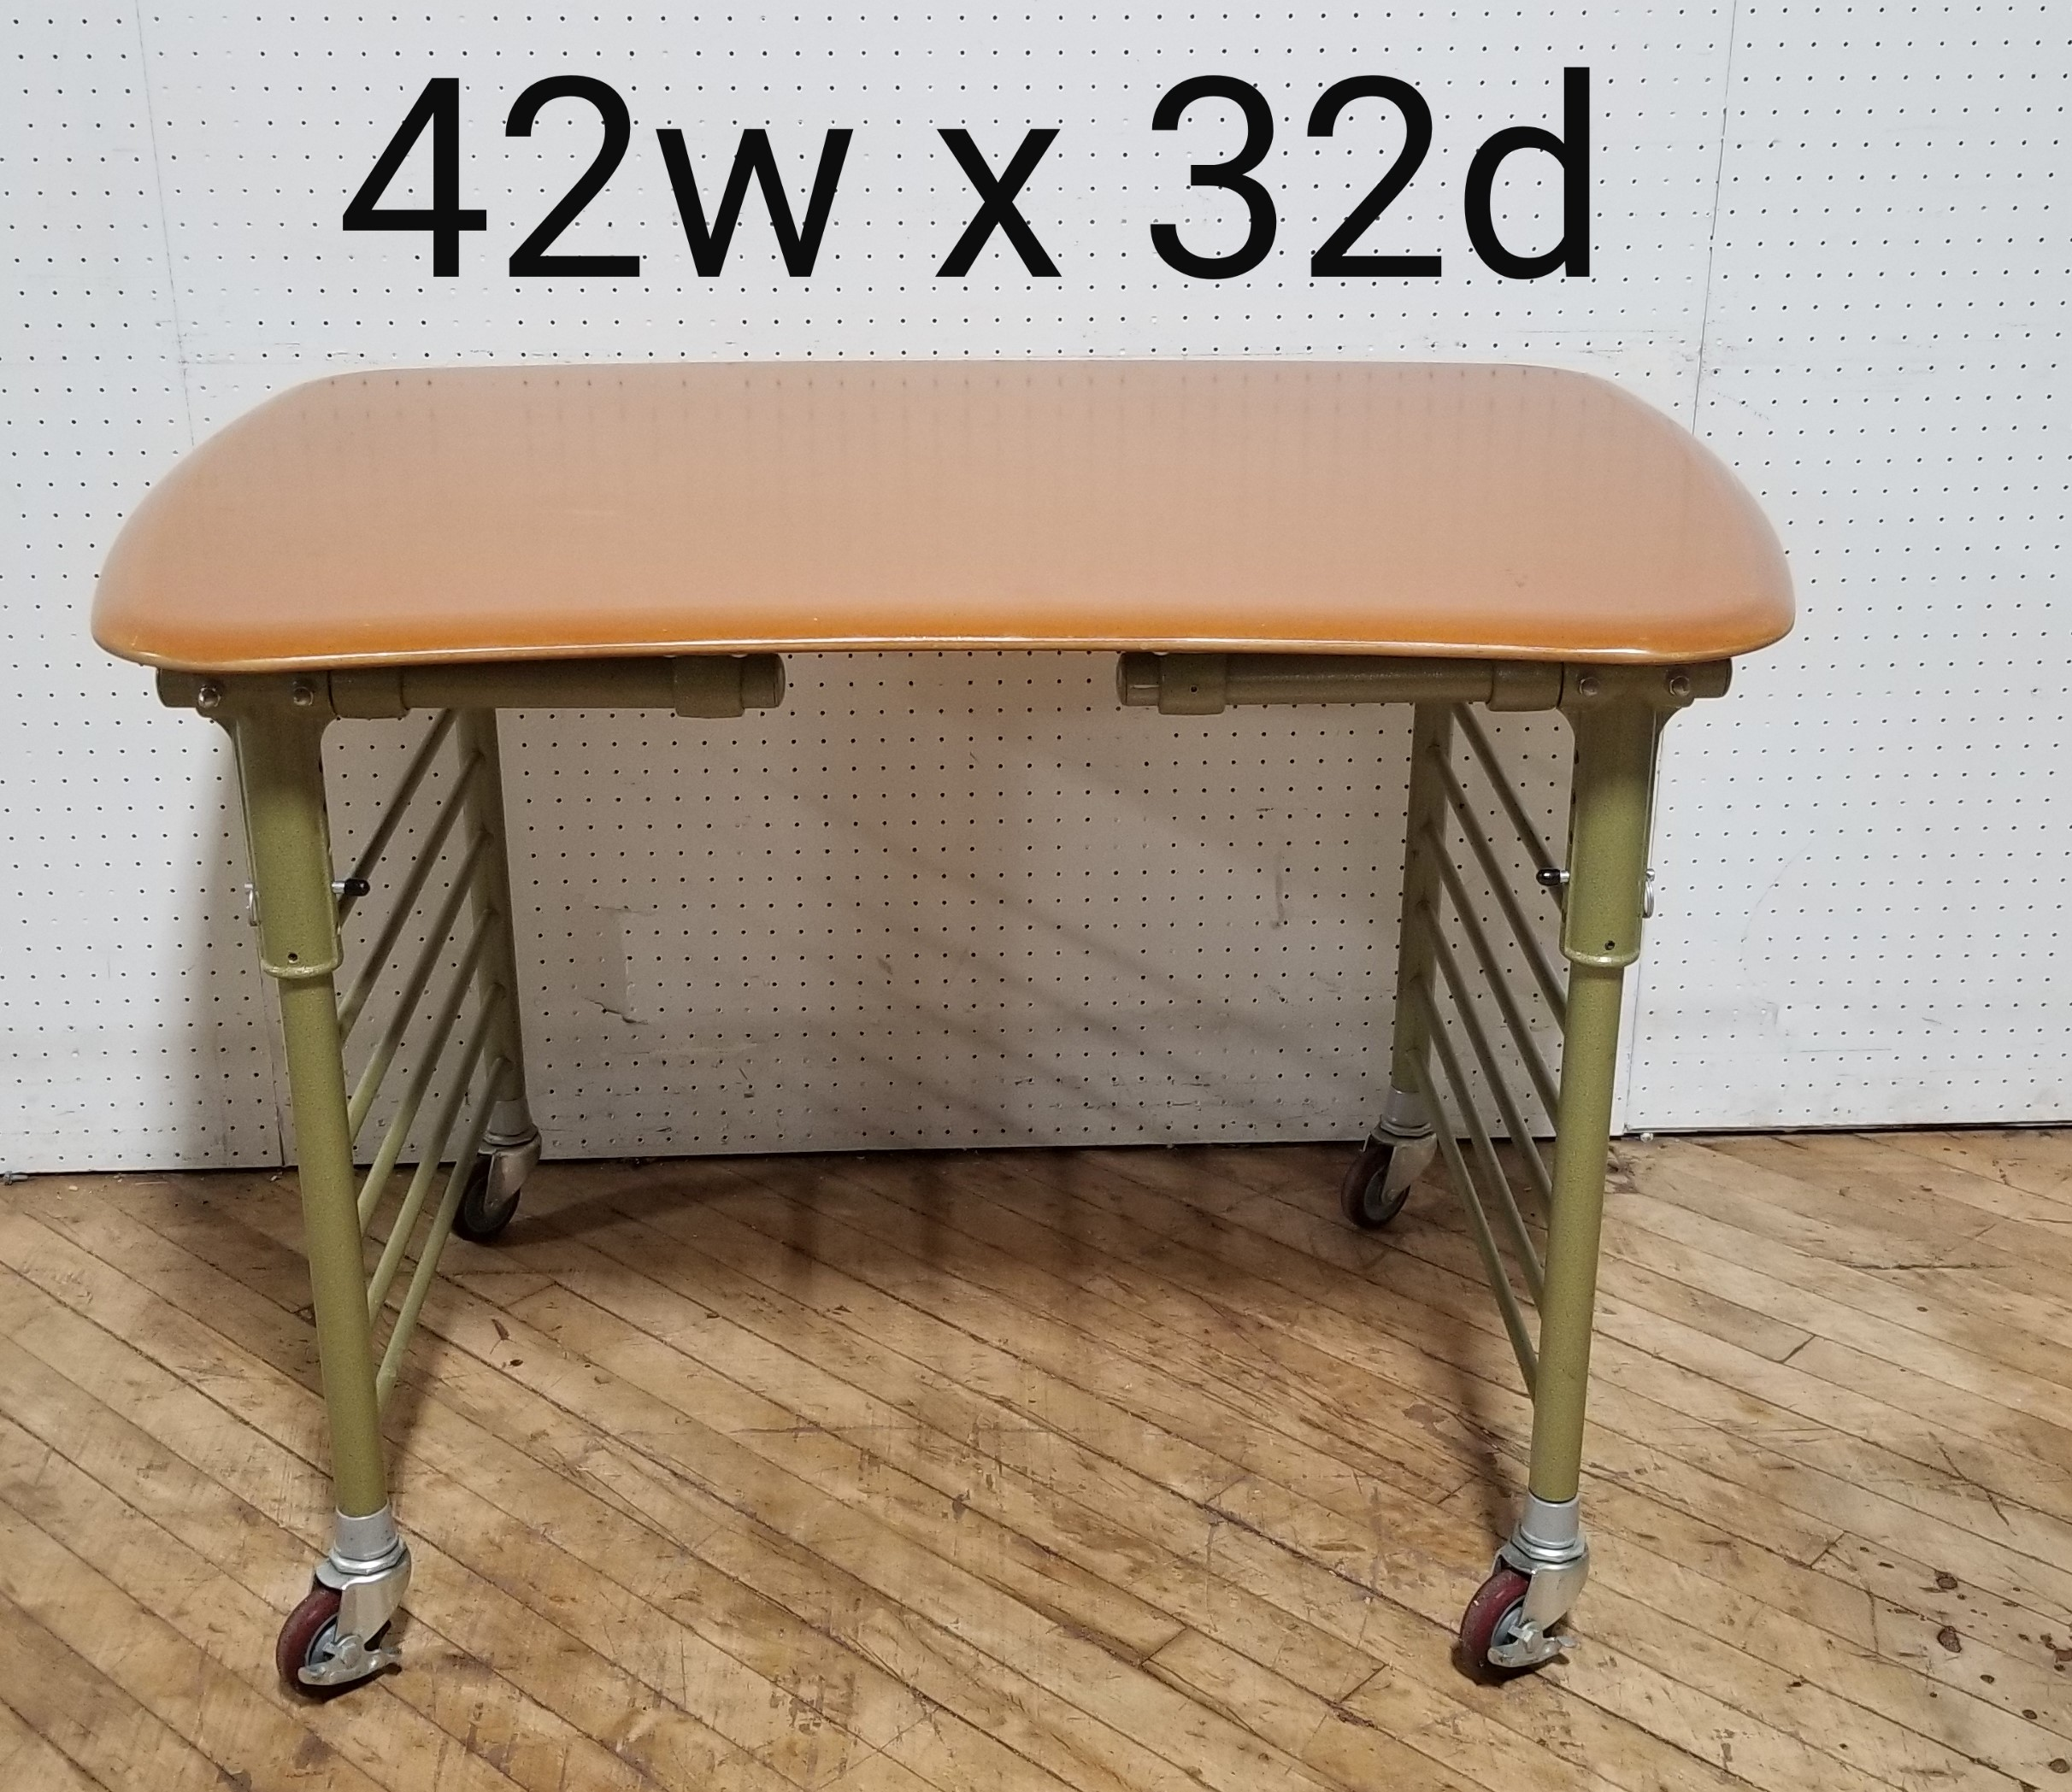 #316. Vintage Haworth Table